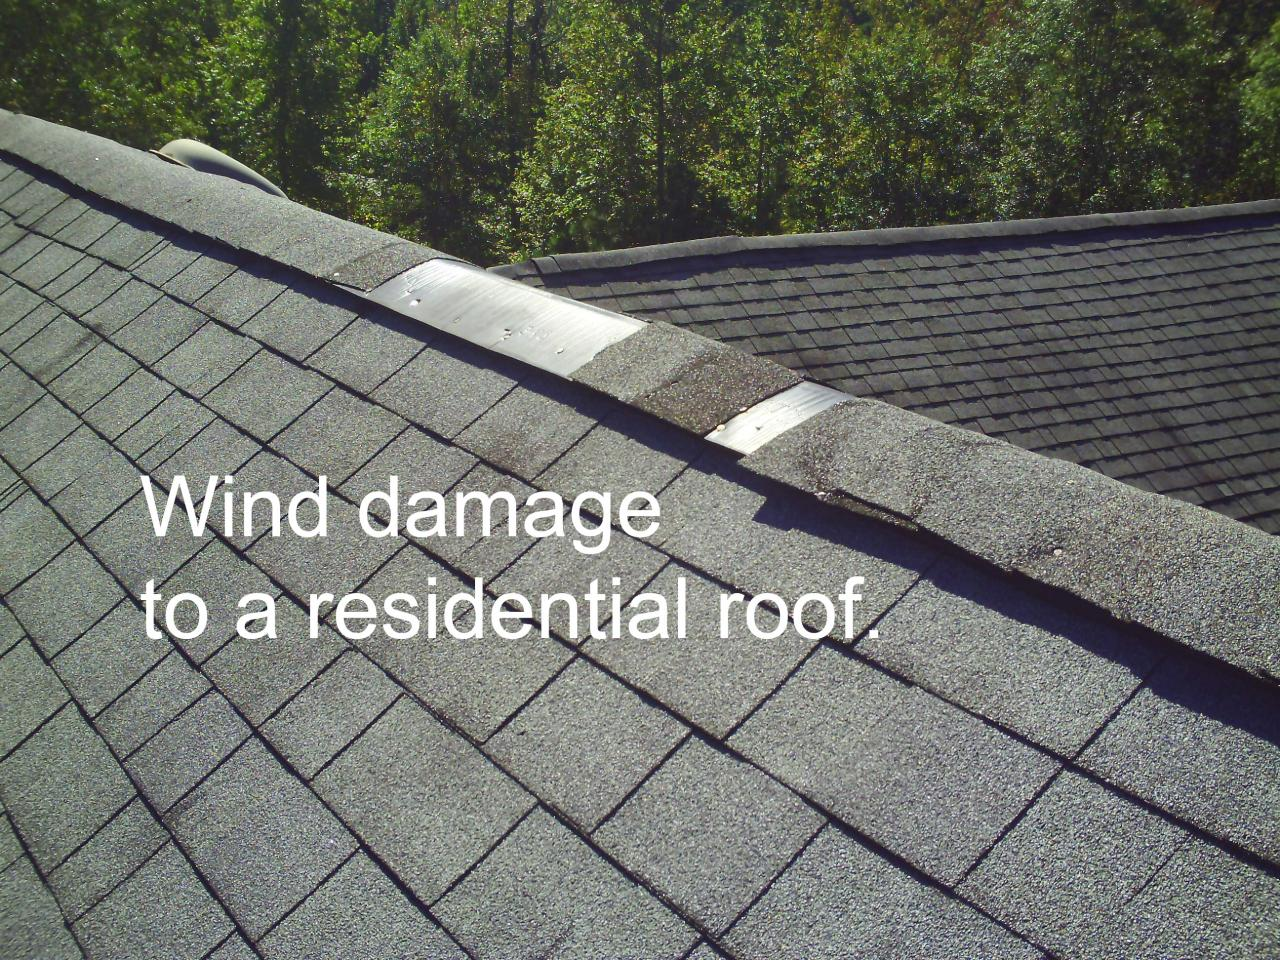 Flat Roof Hail Damage : Mr roofer do you have shingle damage from wind